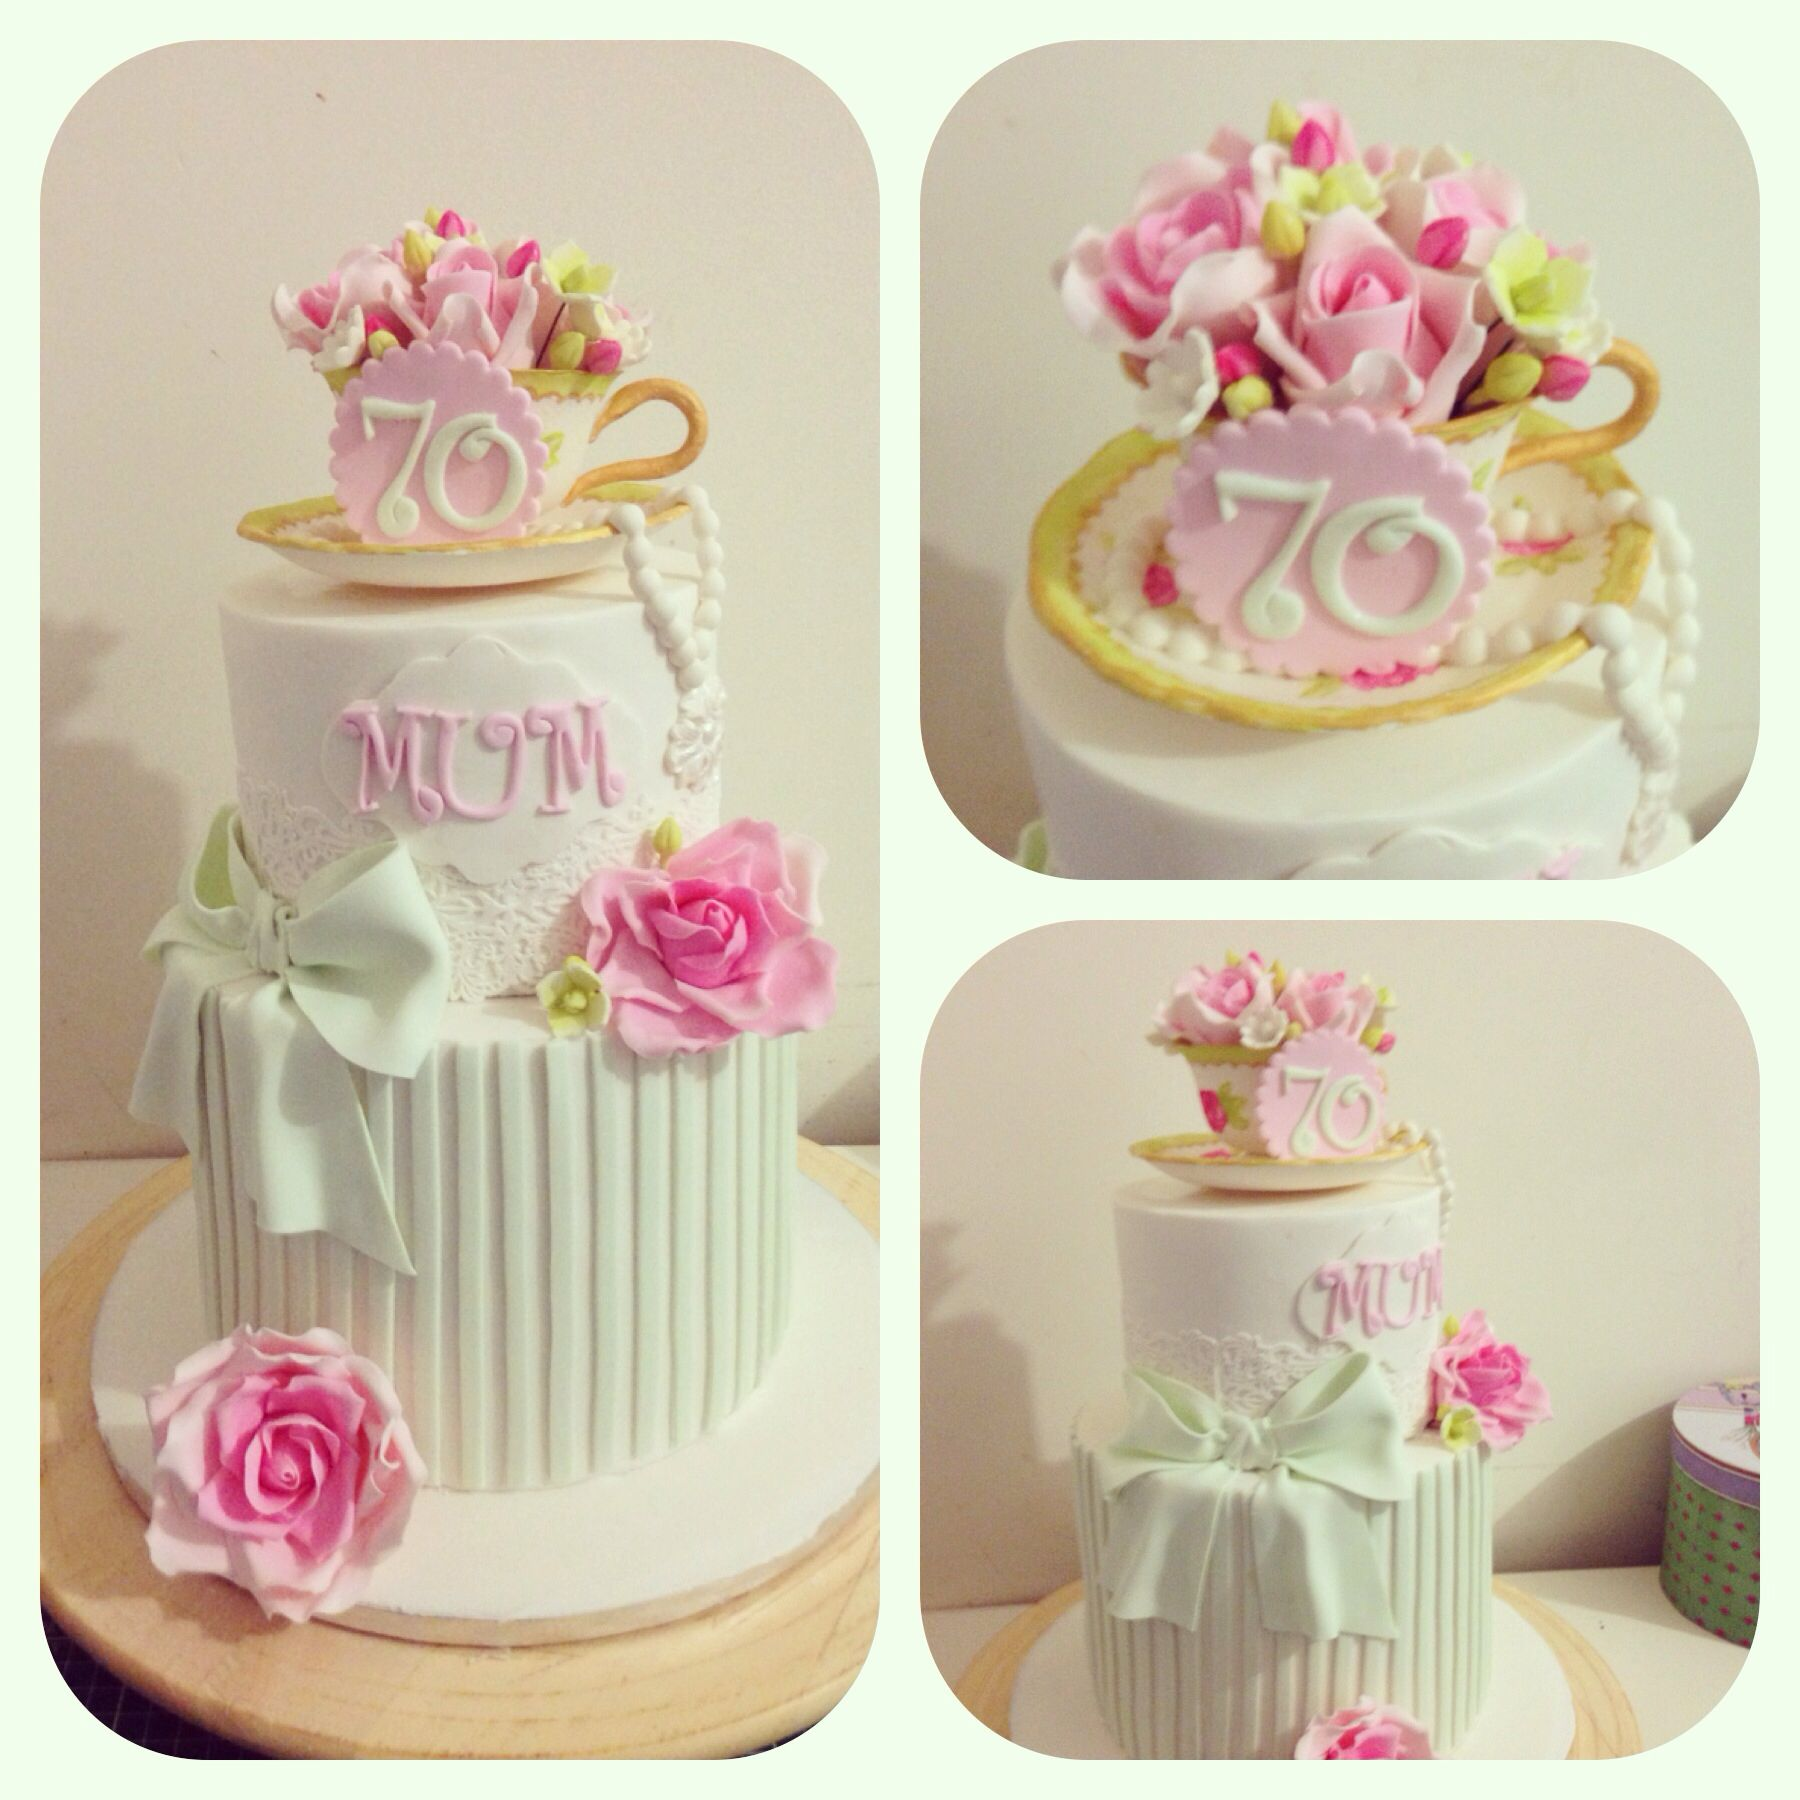 Gumpaste Teacup And Roses Cake For 70th Birthday Cakes By